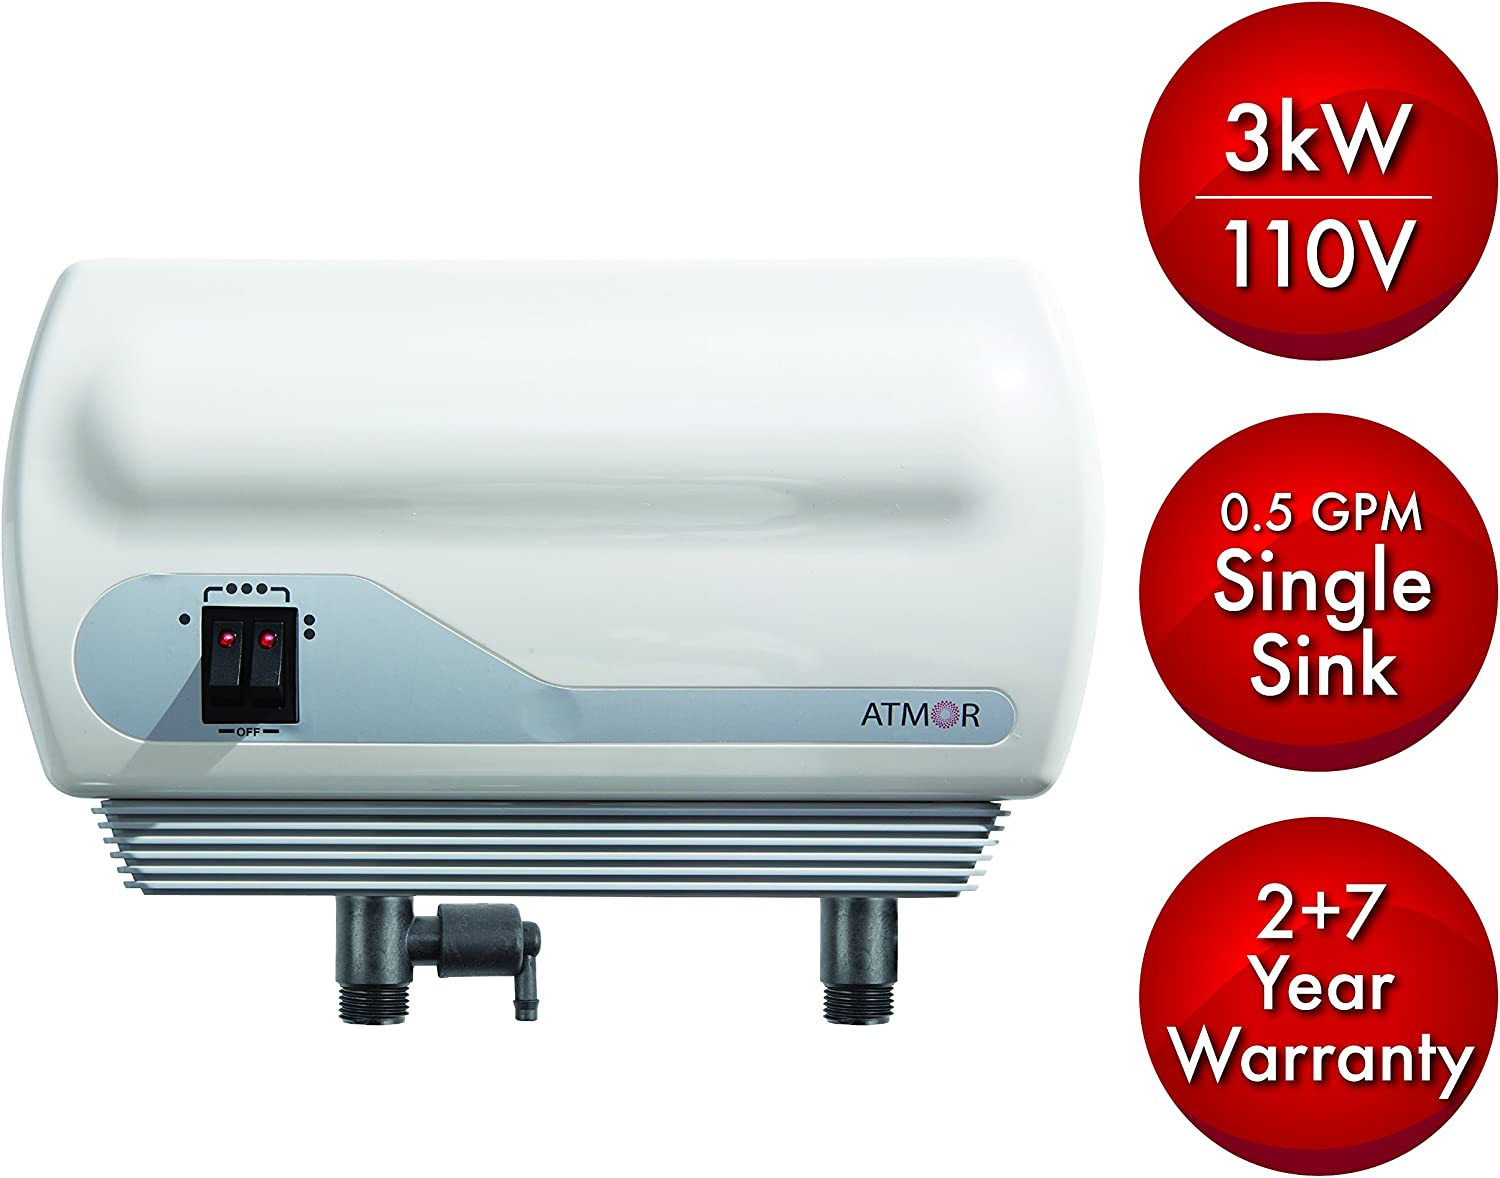 Atmor AT-900-03 Single Sink 3kw/110V, 0.5 GPM Point-Of-Use Tankless Electric Water Heater and 0.5 GMP Sink Aerator Image